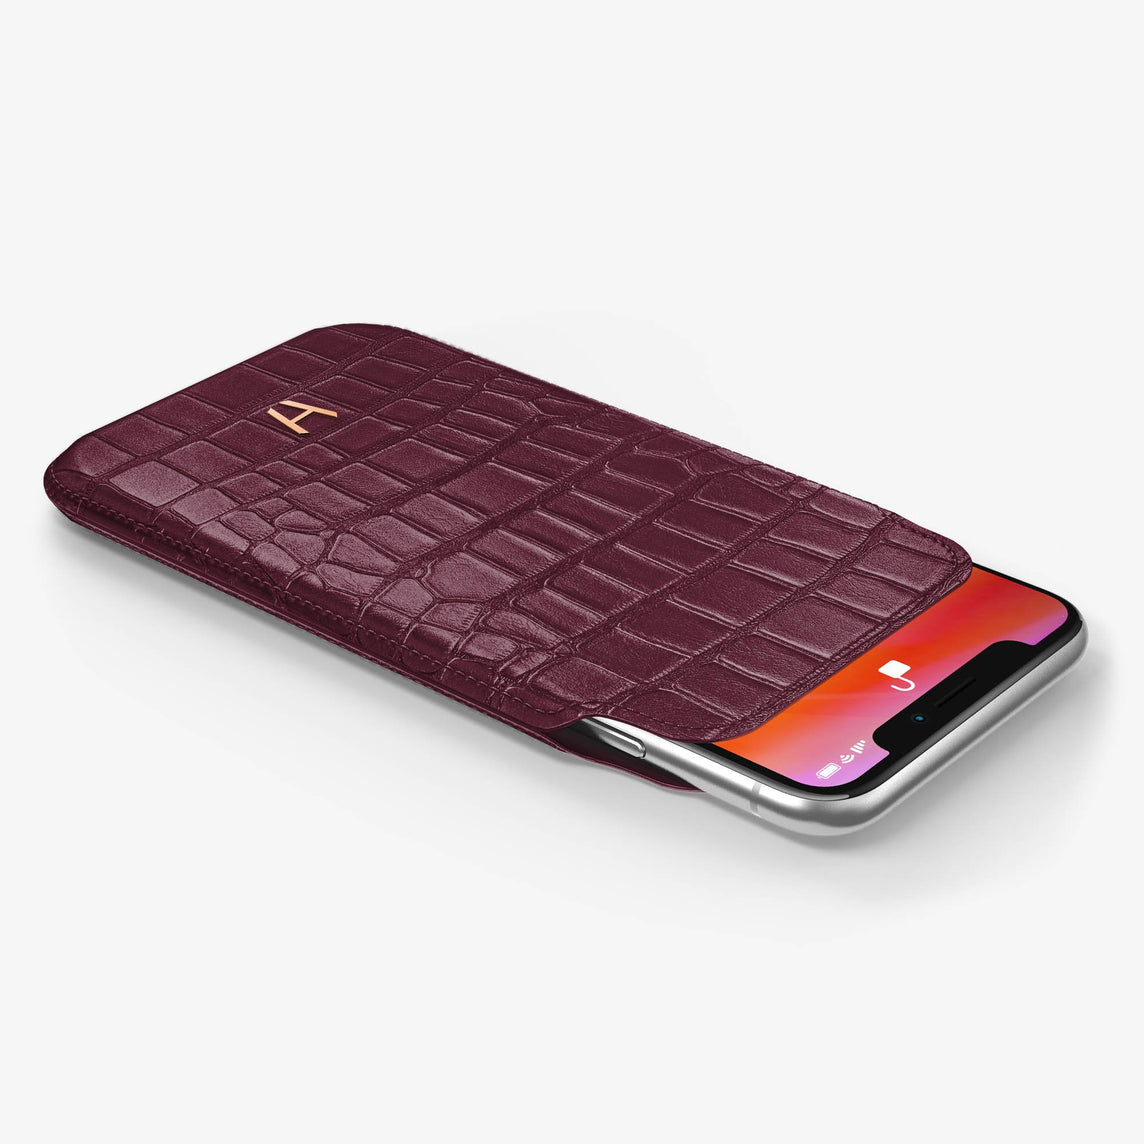 Alligator [iPhone Sleeve Case] [model:iphone-xs-case] [colour:burgundy] [finishing:rose-gold]